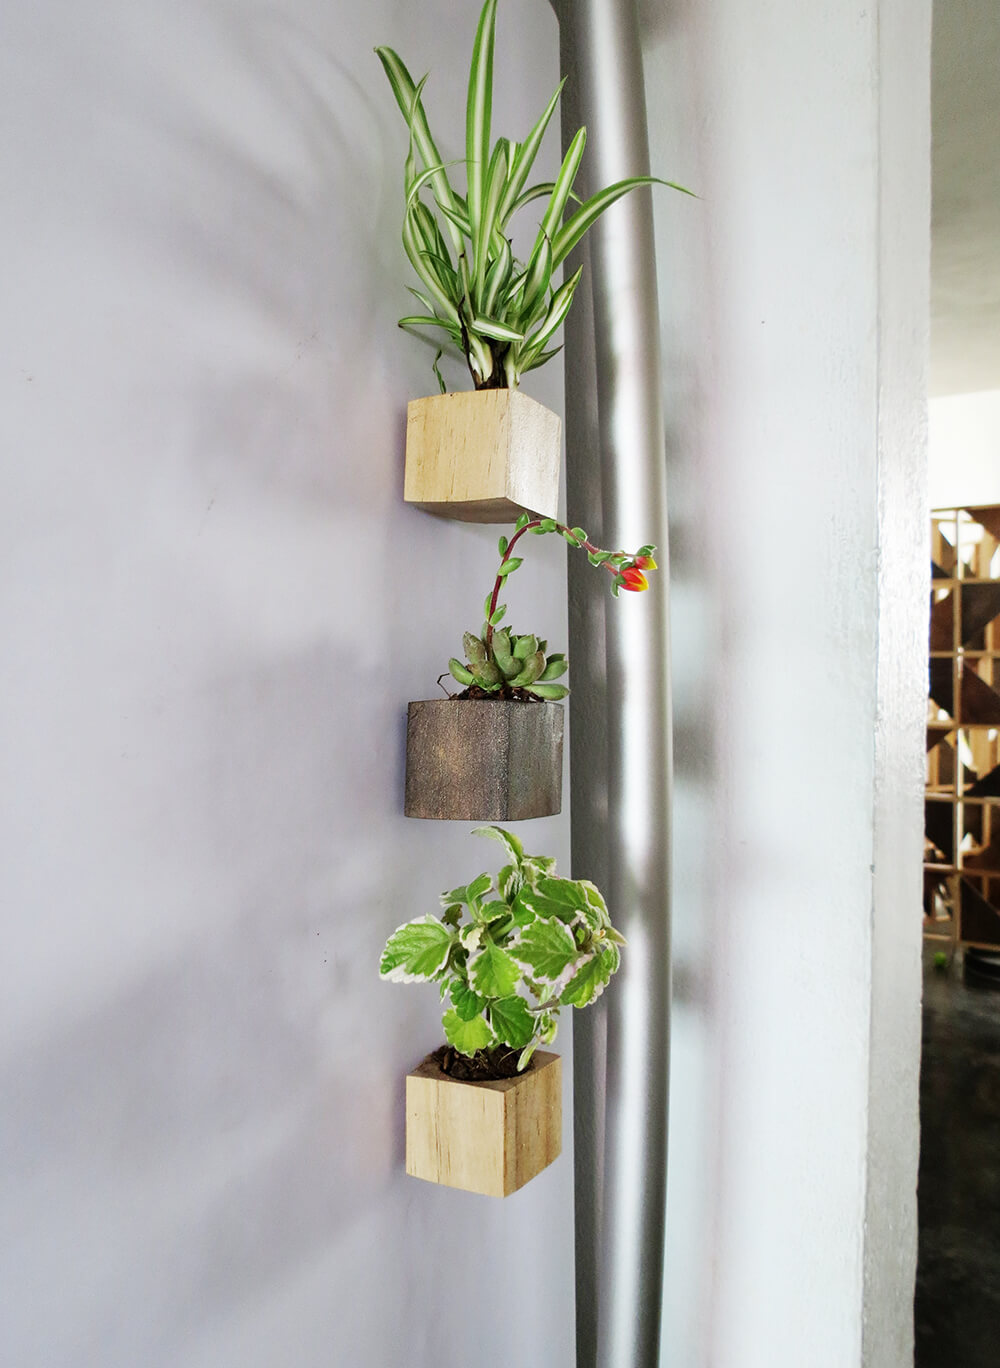 Magnet planters on the fridge / grillo designs